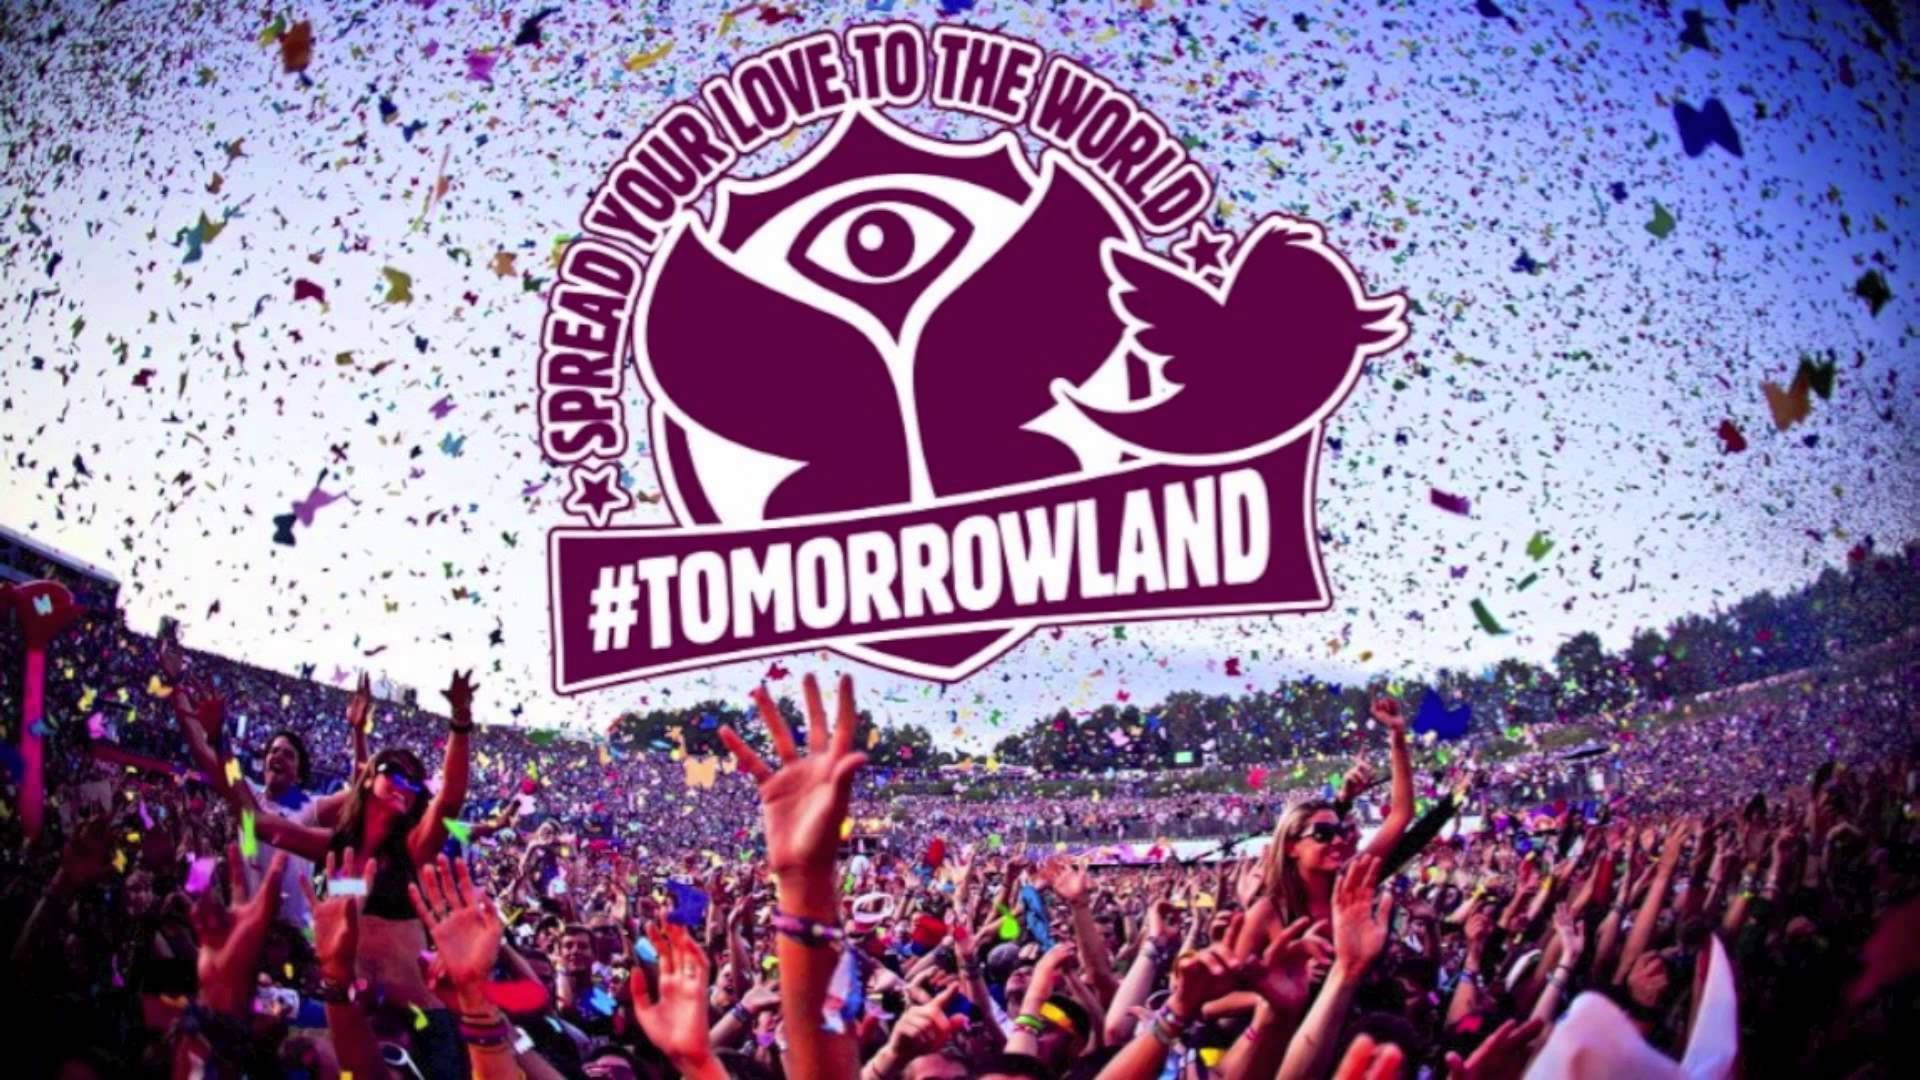 Tomorrowland Logo HD Free Wallpapers Download | 가보고 싶은 장소 ...